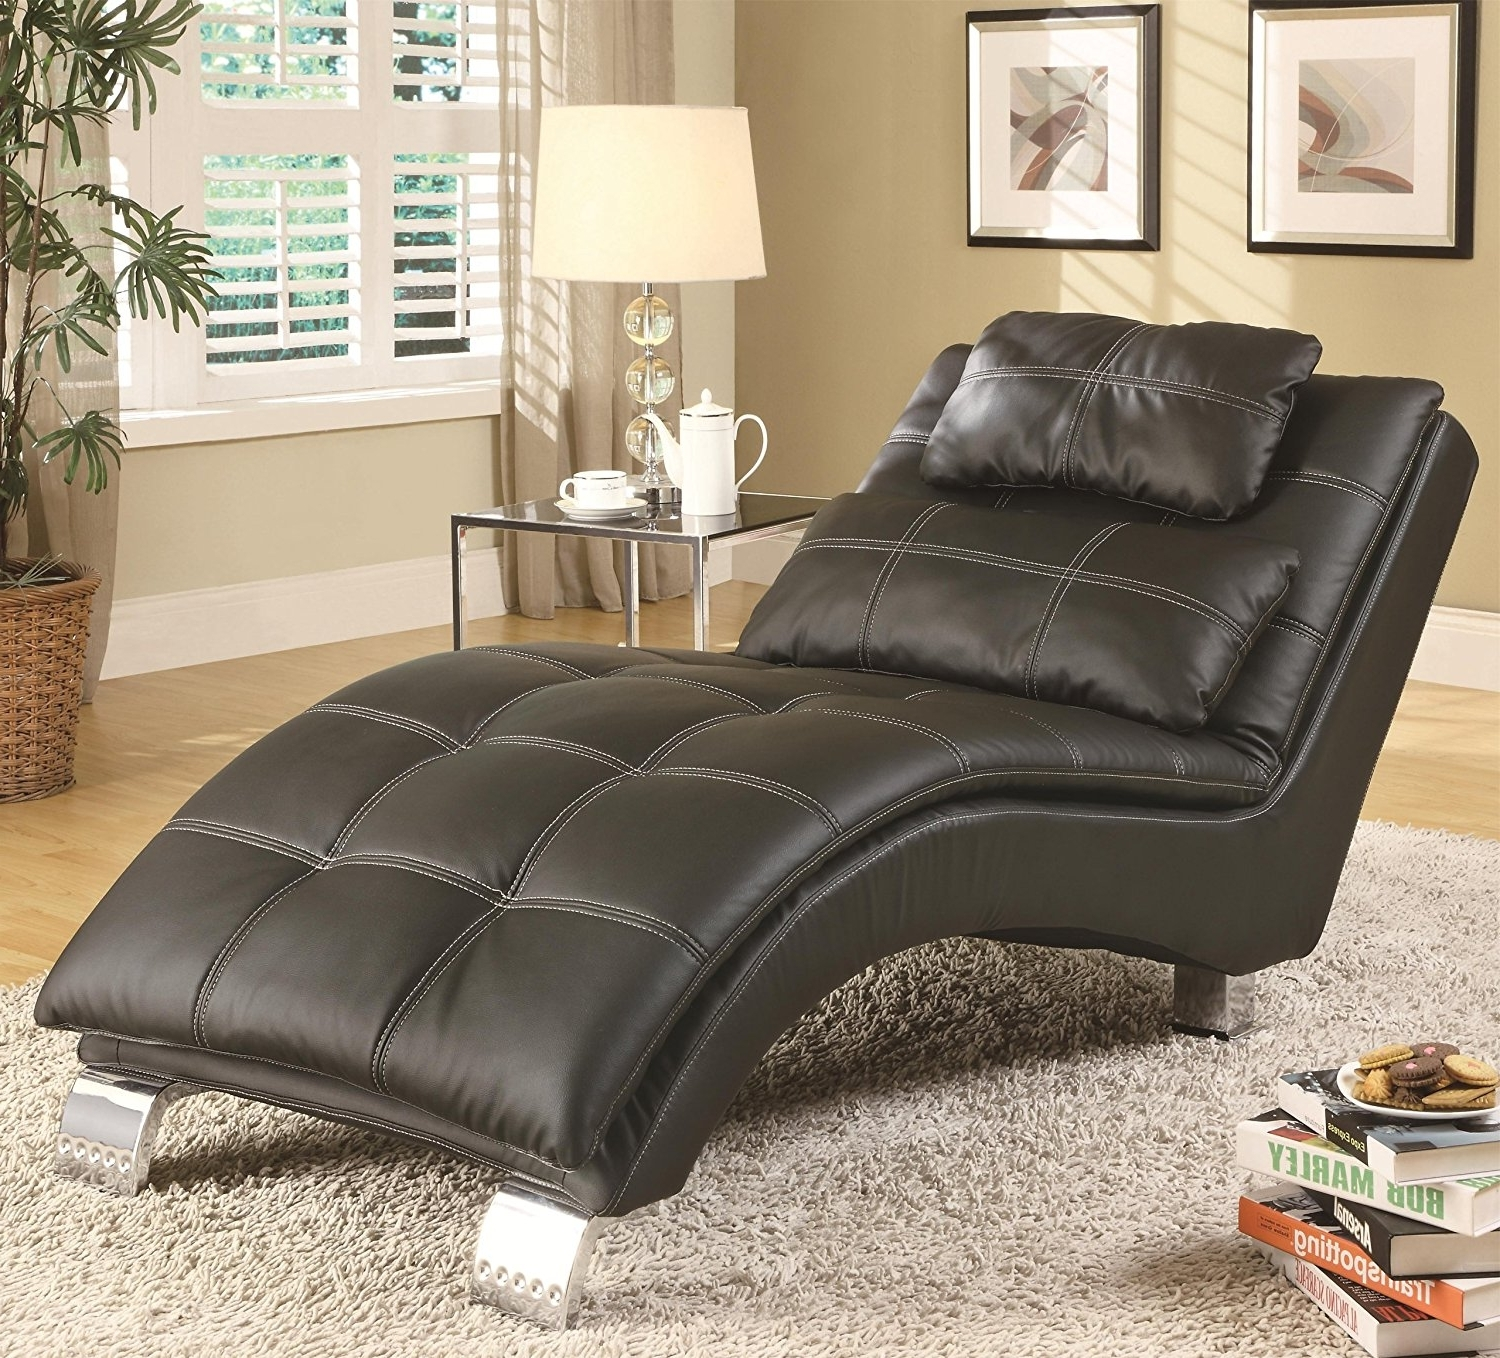 Well Known Luxury Chaise Lounge Chairs For Luxury Chaise Lounge Chairs For Living Room X1 # (View 13 of 15)